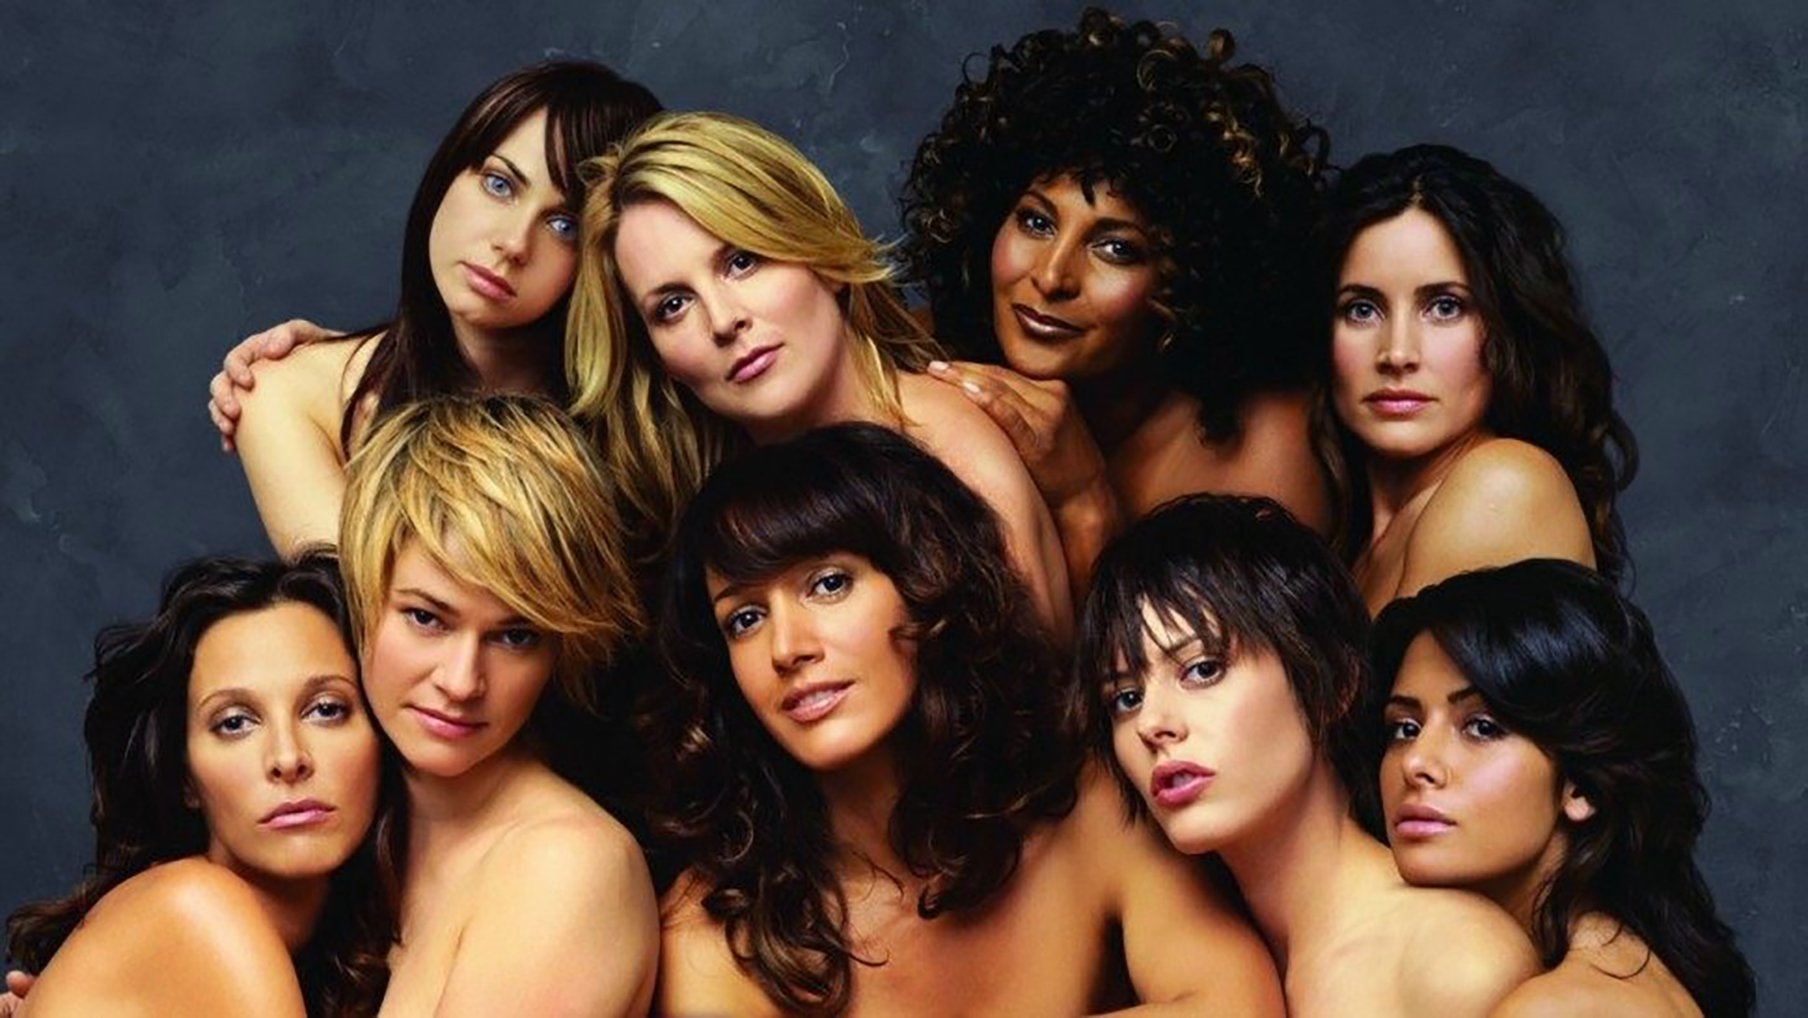 The L Word reboot is a rare chance to depict queerness in all its beautiful diversity